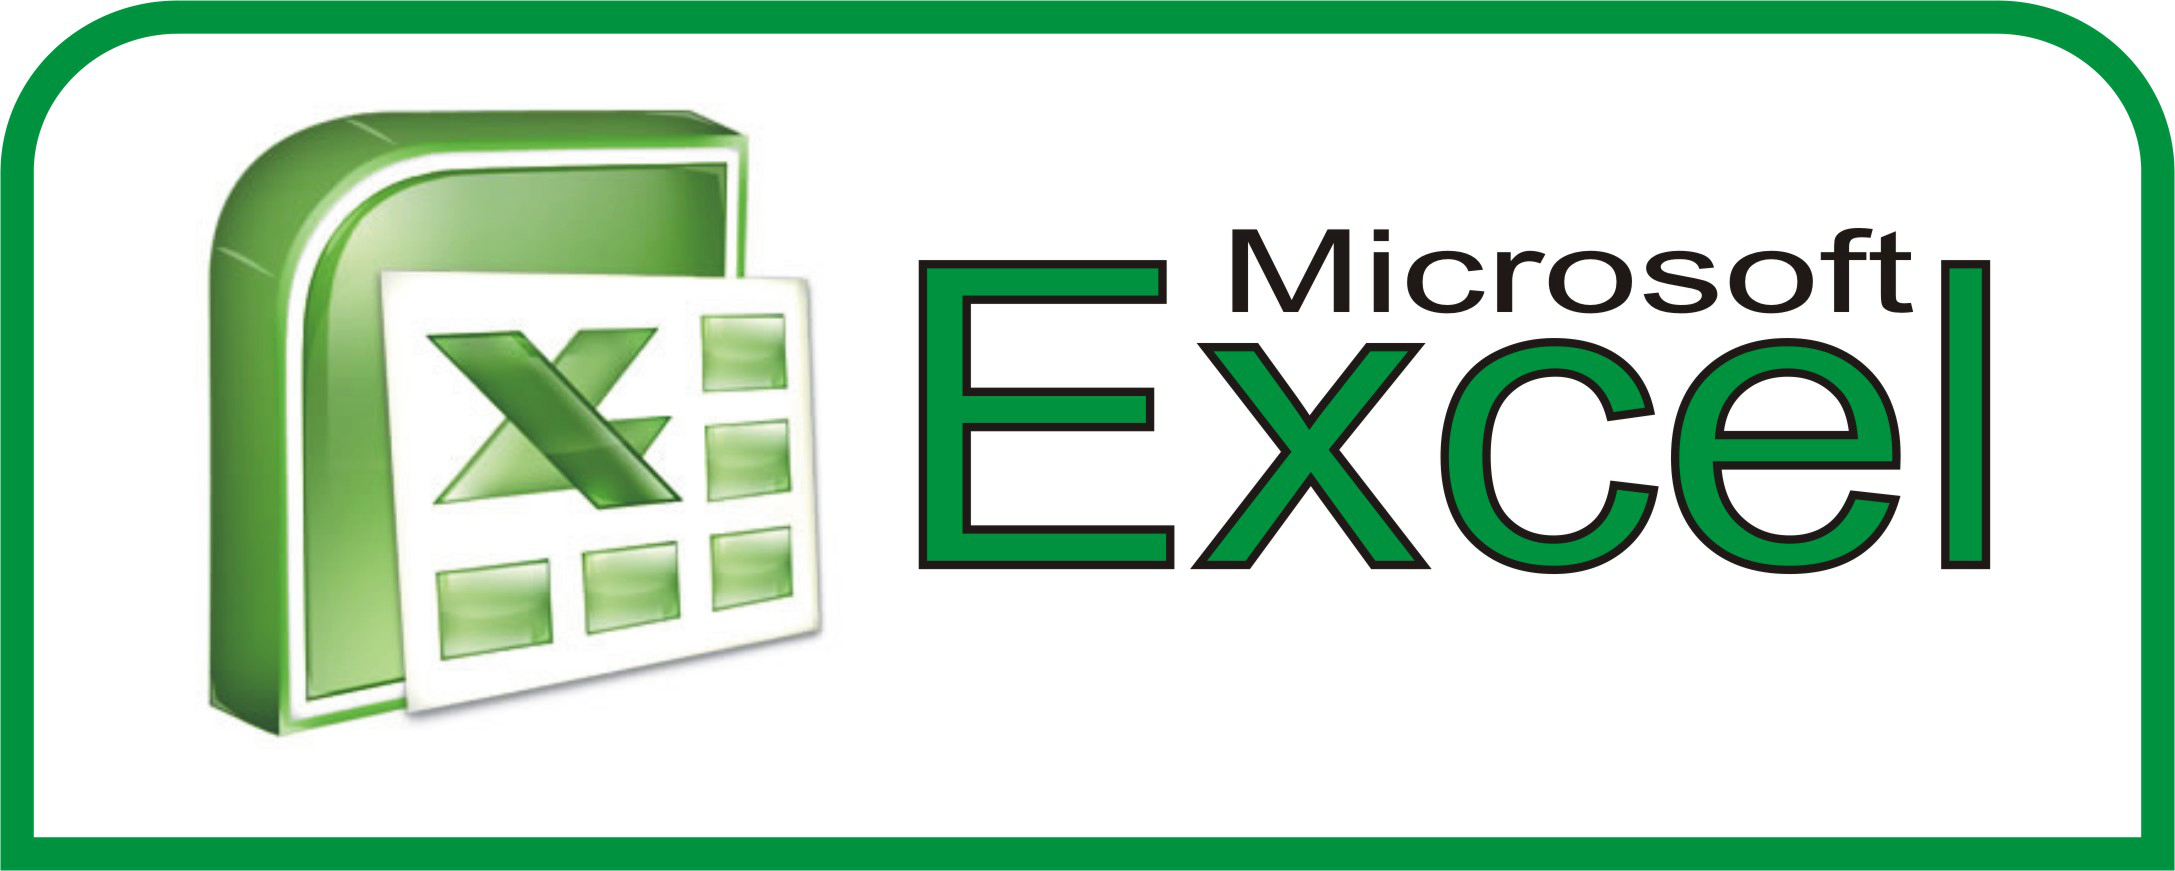 Ediblewildsus  Stunning  Excel Shortcuts You Probably Didnt Know About  Techdissected With Glamorous Excel Mean Formula Besides How To Create A Budget On Excel Furthermore Excel Ref With Alluring Latest Version Of Excel Also Calculate Days Between Two Dates In Excel In Addition Excel Contact List Template And Python Read Excel As Well As What Is A Function In Excel Additionally Excel Vba Range Cells From Techdissectedcom With Ediblewildsus  Glamorous  Excel Shortcuts You Probably Didnt Know About  Techdissected With Alluring Excel Mean Formula Besides How To Create A Budget On Excel Furthermore Excel Ref And Stunning Latest Version Of Excel Also Calculate Days Between Two Dates In Excel In Addition Excel Contact List Template From Techdissectedcom